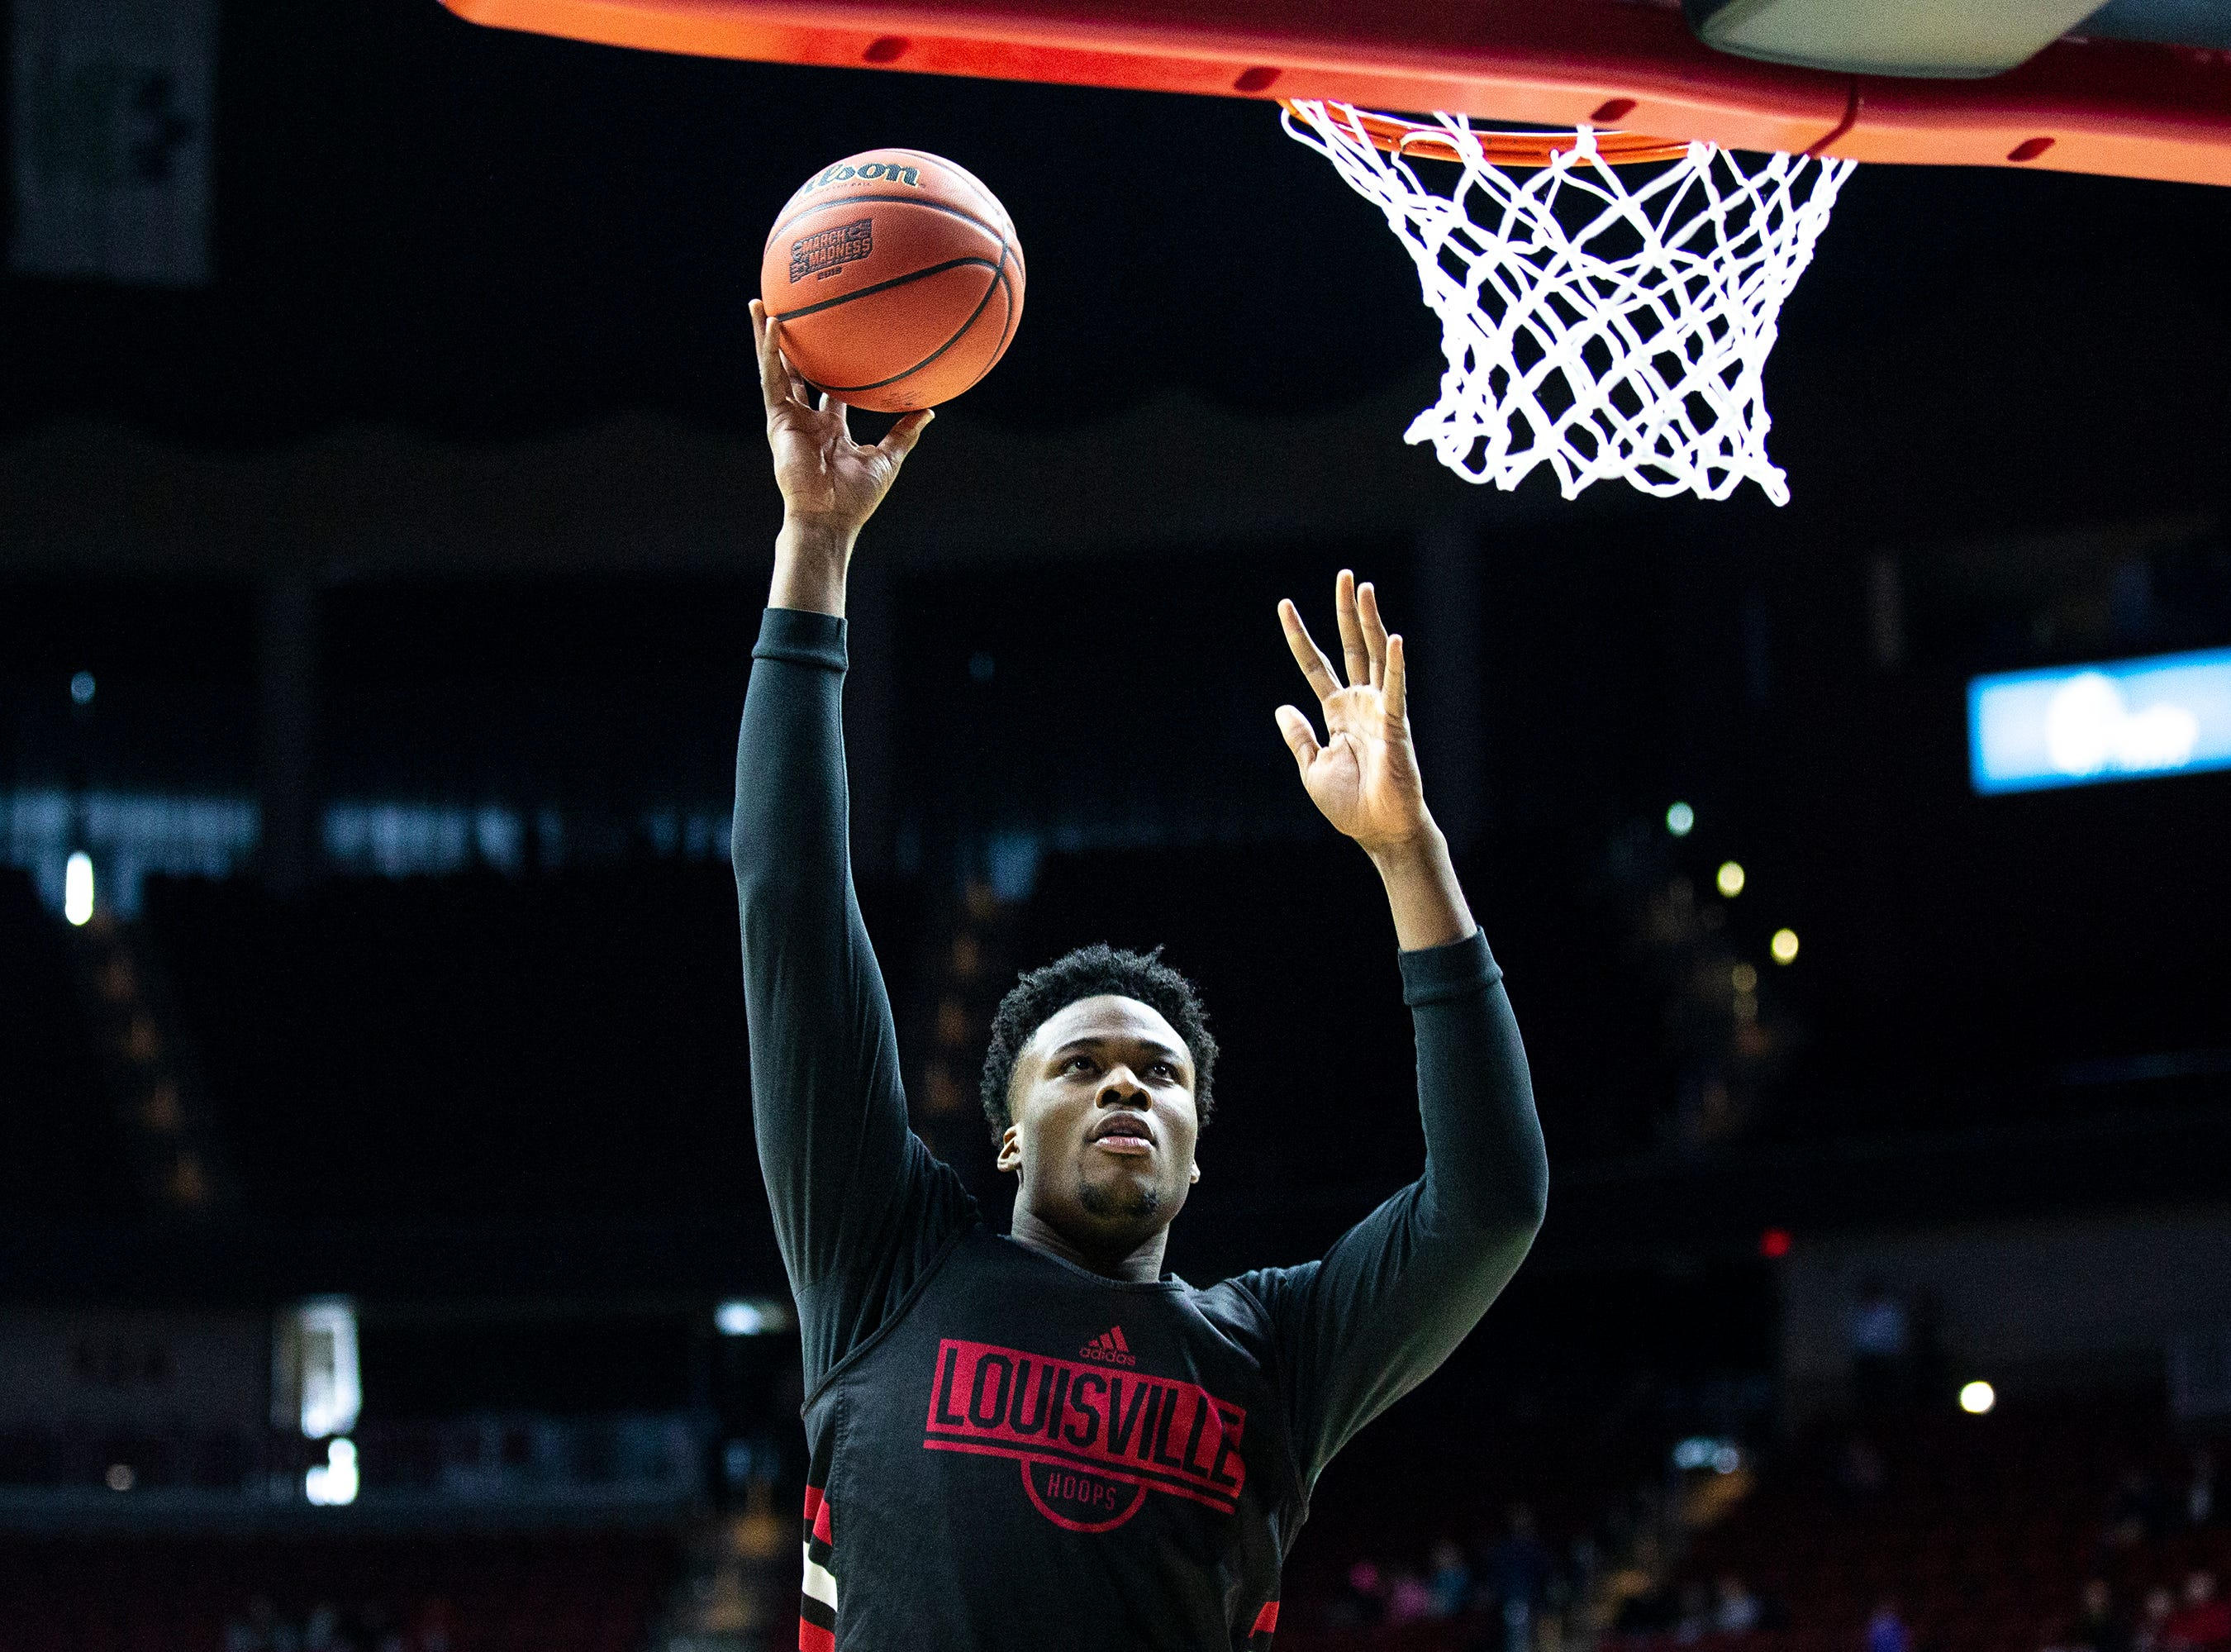 Louisville's Steven Enoch  shoots the ball during Louisville's open practice before the first round of the NCAA Men's Basketball Tournament on Wednesday, March 20, 2019, at Wells Fargo Arena in Des Moines, Iowa.